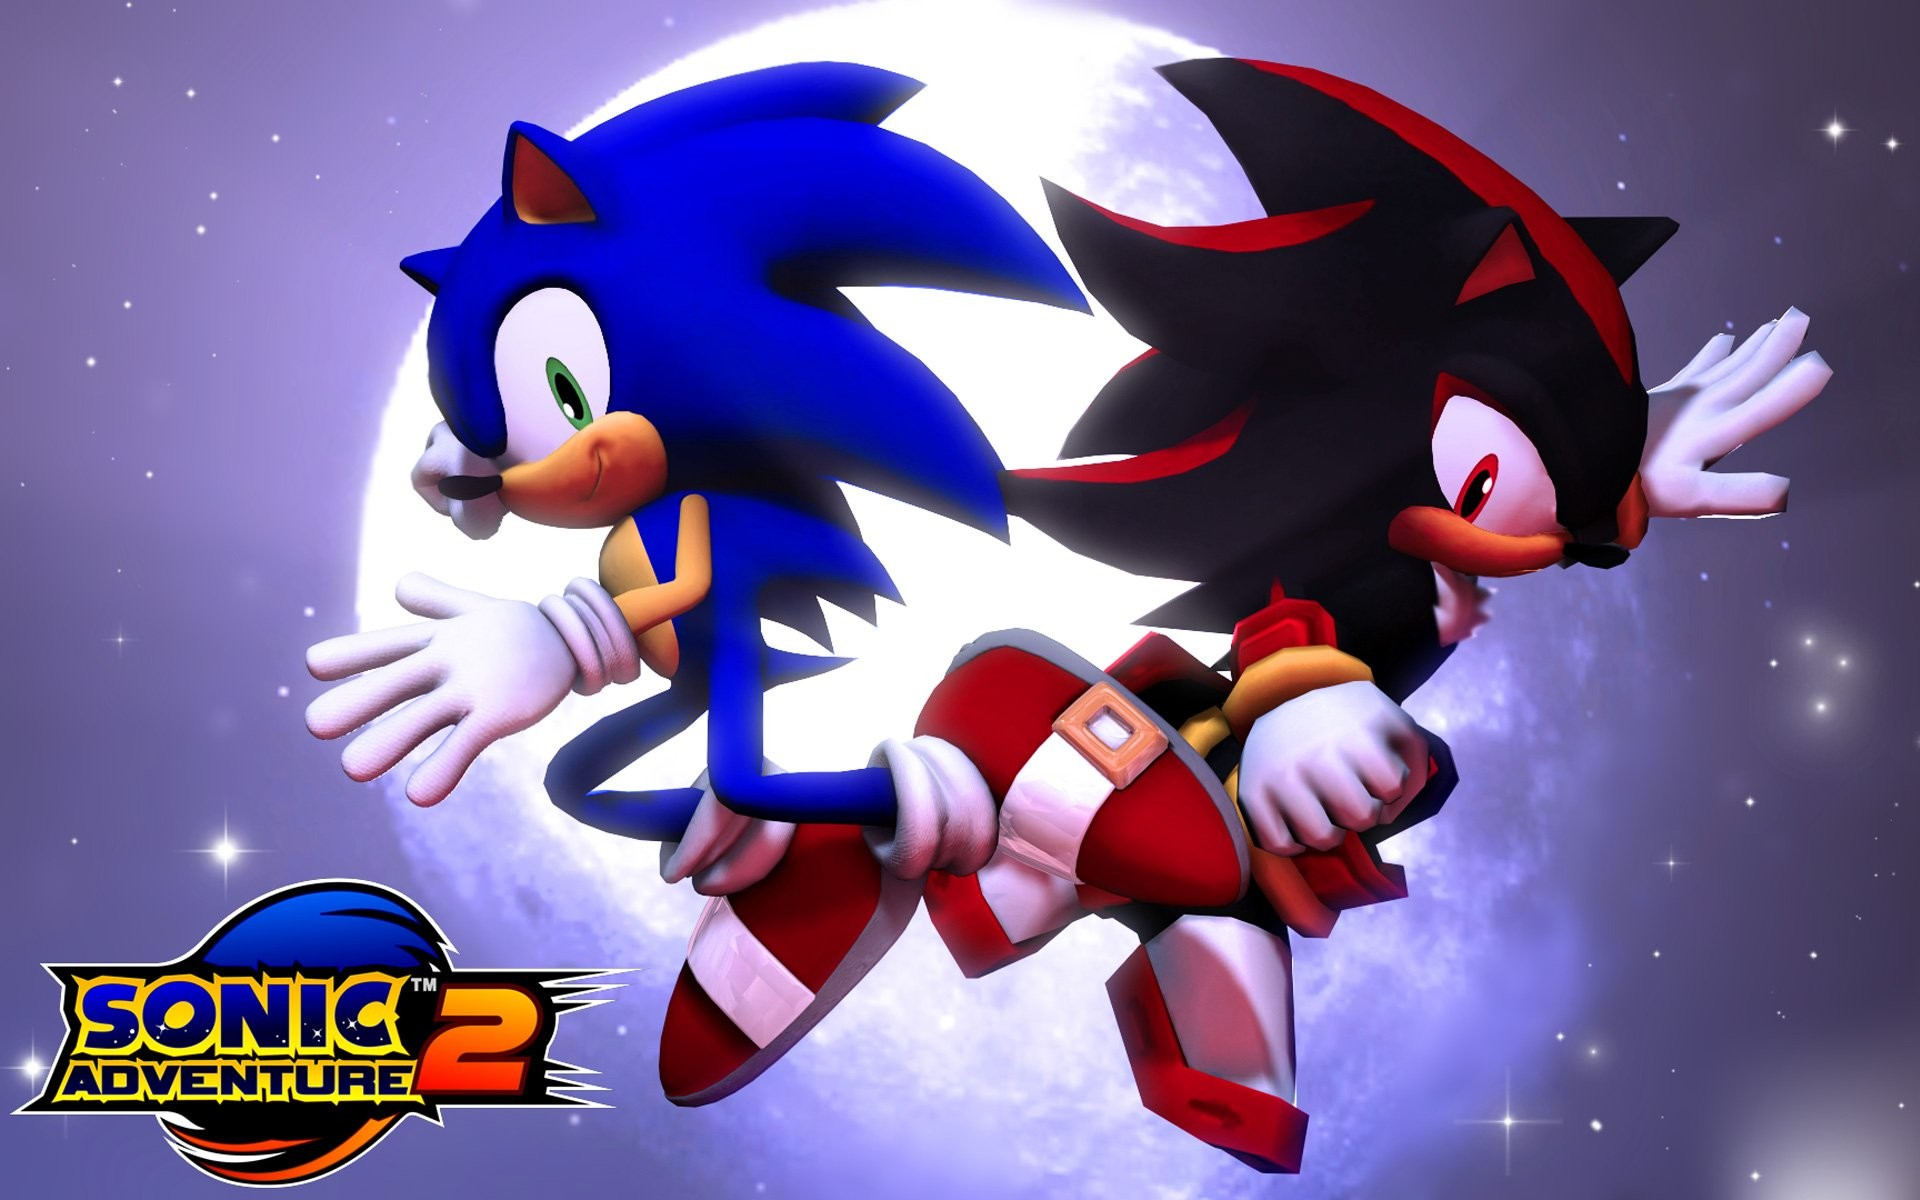 … hd wallpaper and; sonic adventure 2 walldevil …